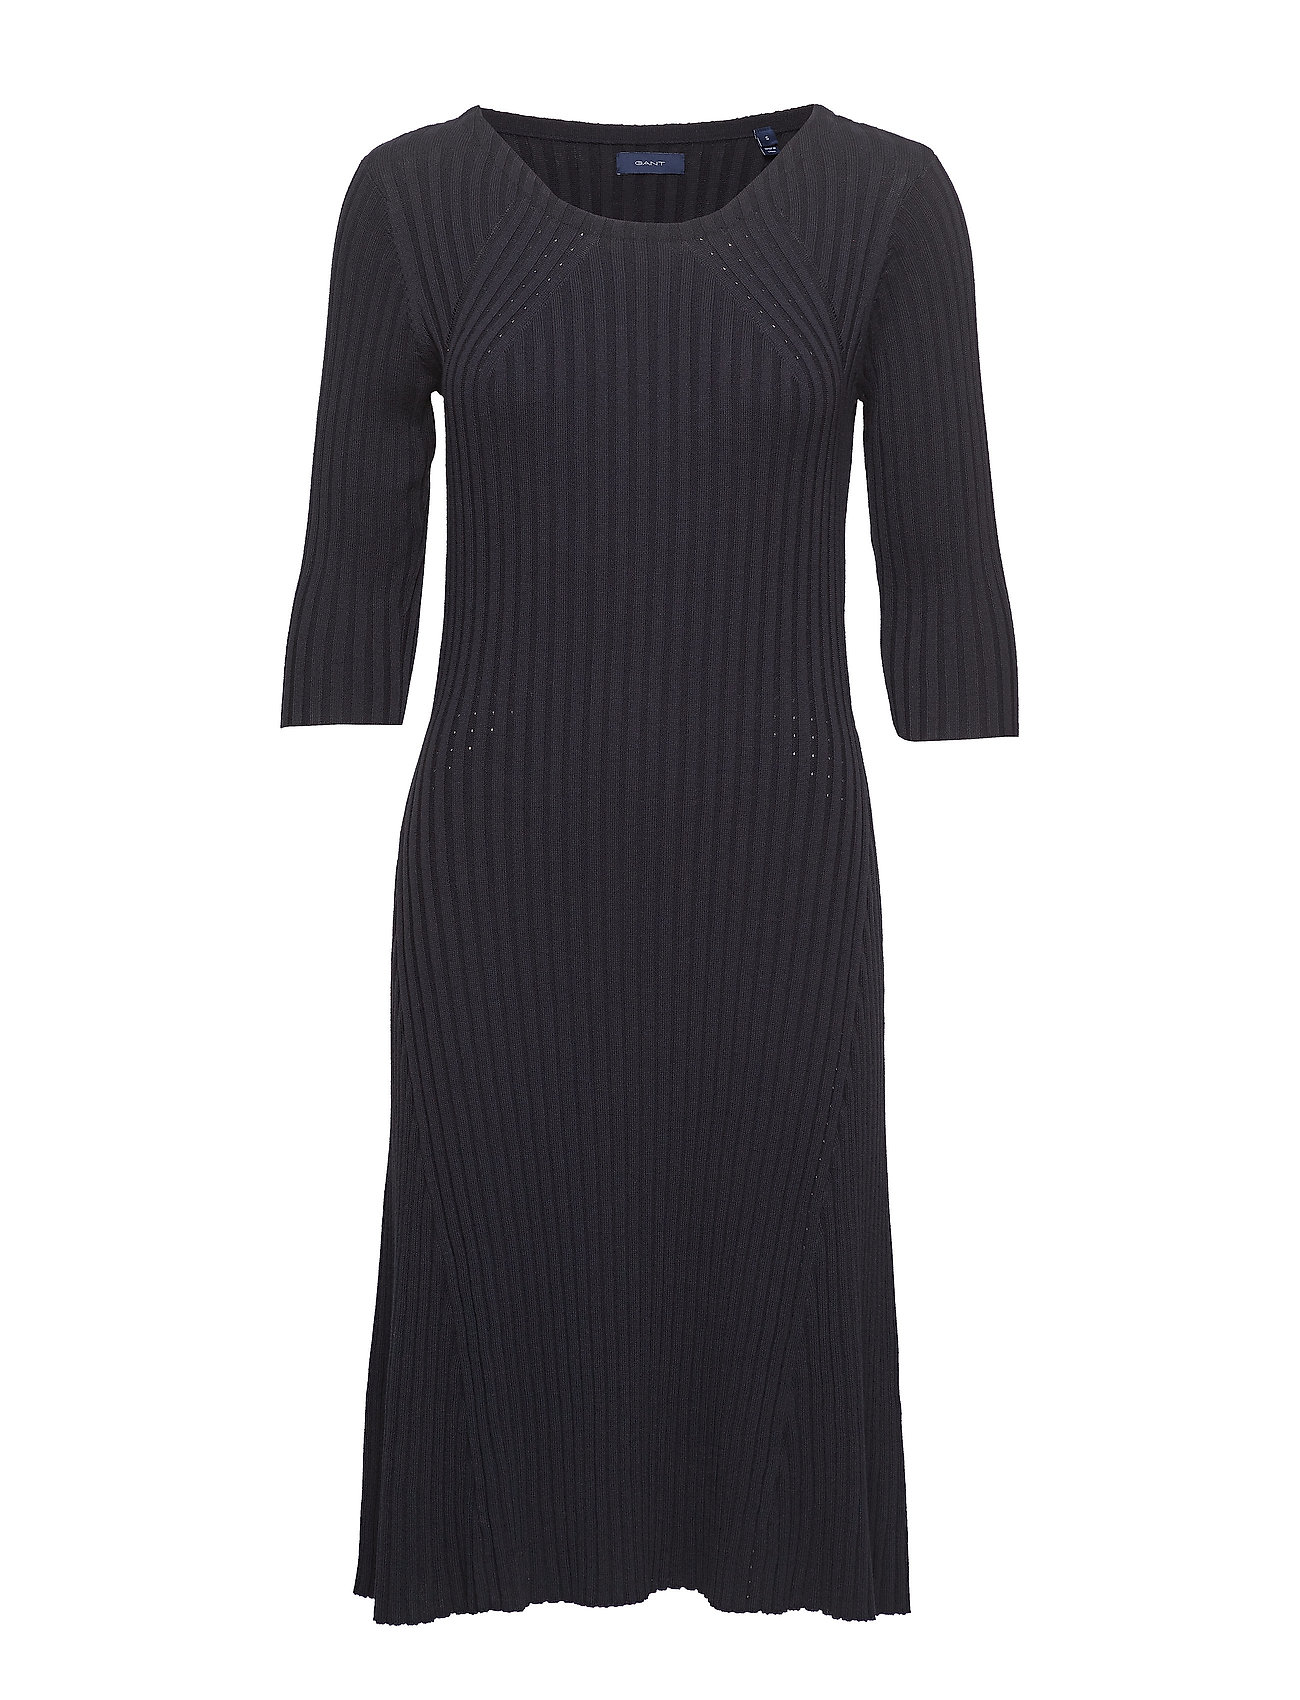 GANT D1. KNITTED DRESS - EVENING BLUE